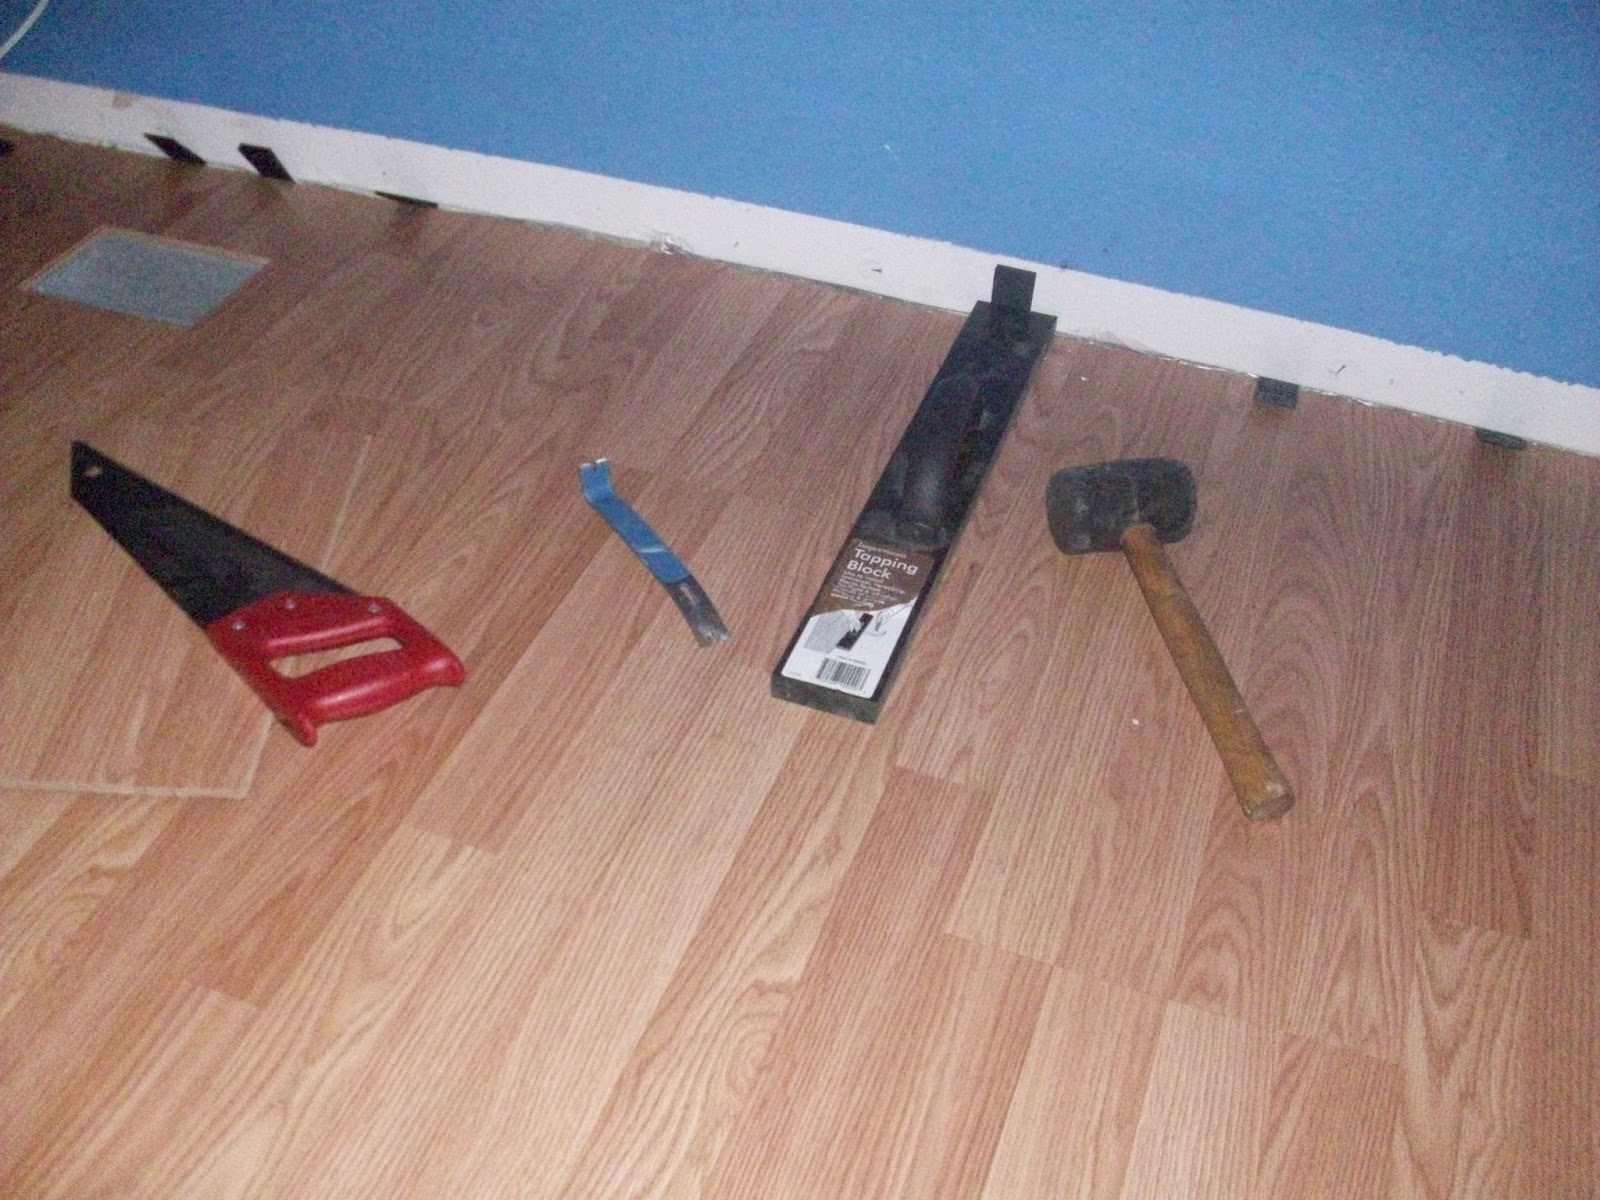 Bigfamiliesbigideas weekly victory do it yourself wood for Hard laminate flooring